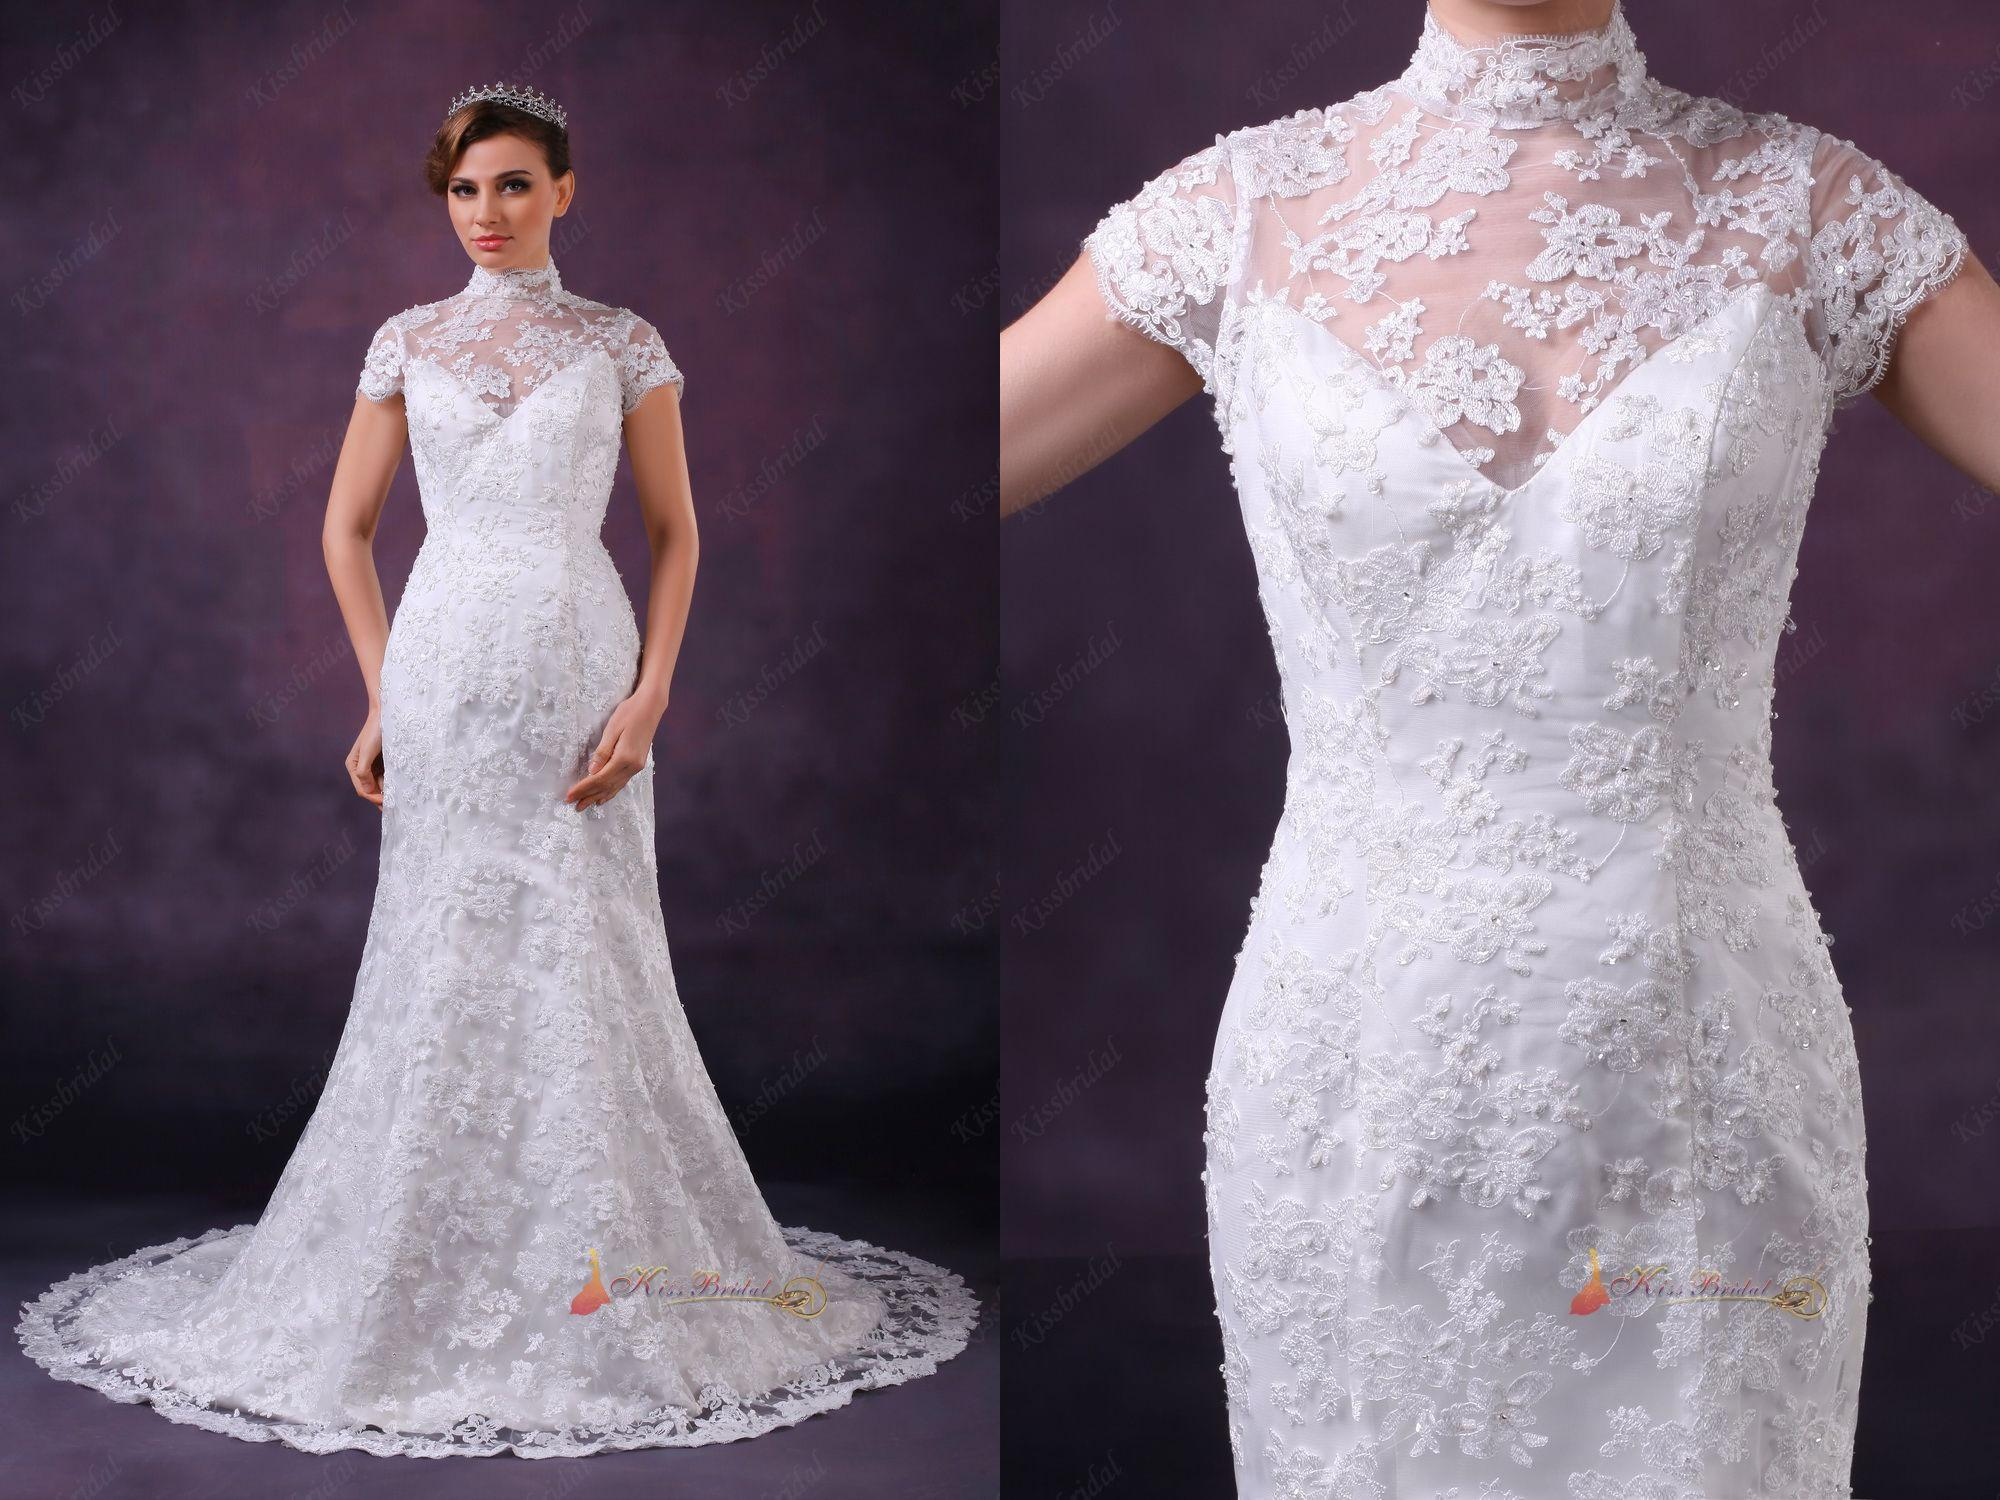 Christmas wedding dress zipper - 2014 New Christmas Wedding Dress High Neck Short Sleeve Zipper Back Chapel Train Applique Bead Lace Bridal Gowns Dresses Fashion Trend 2015